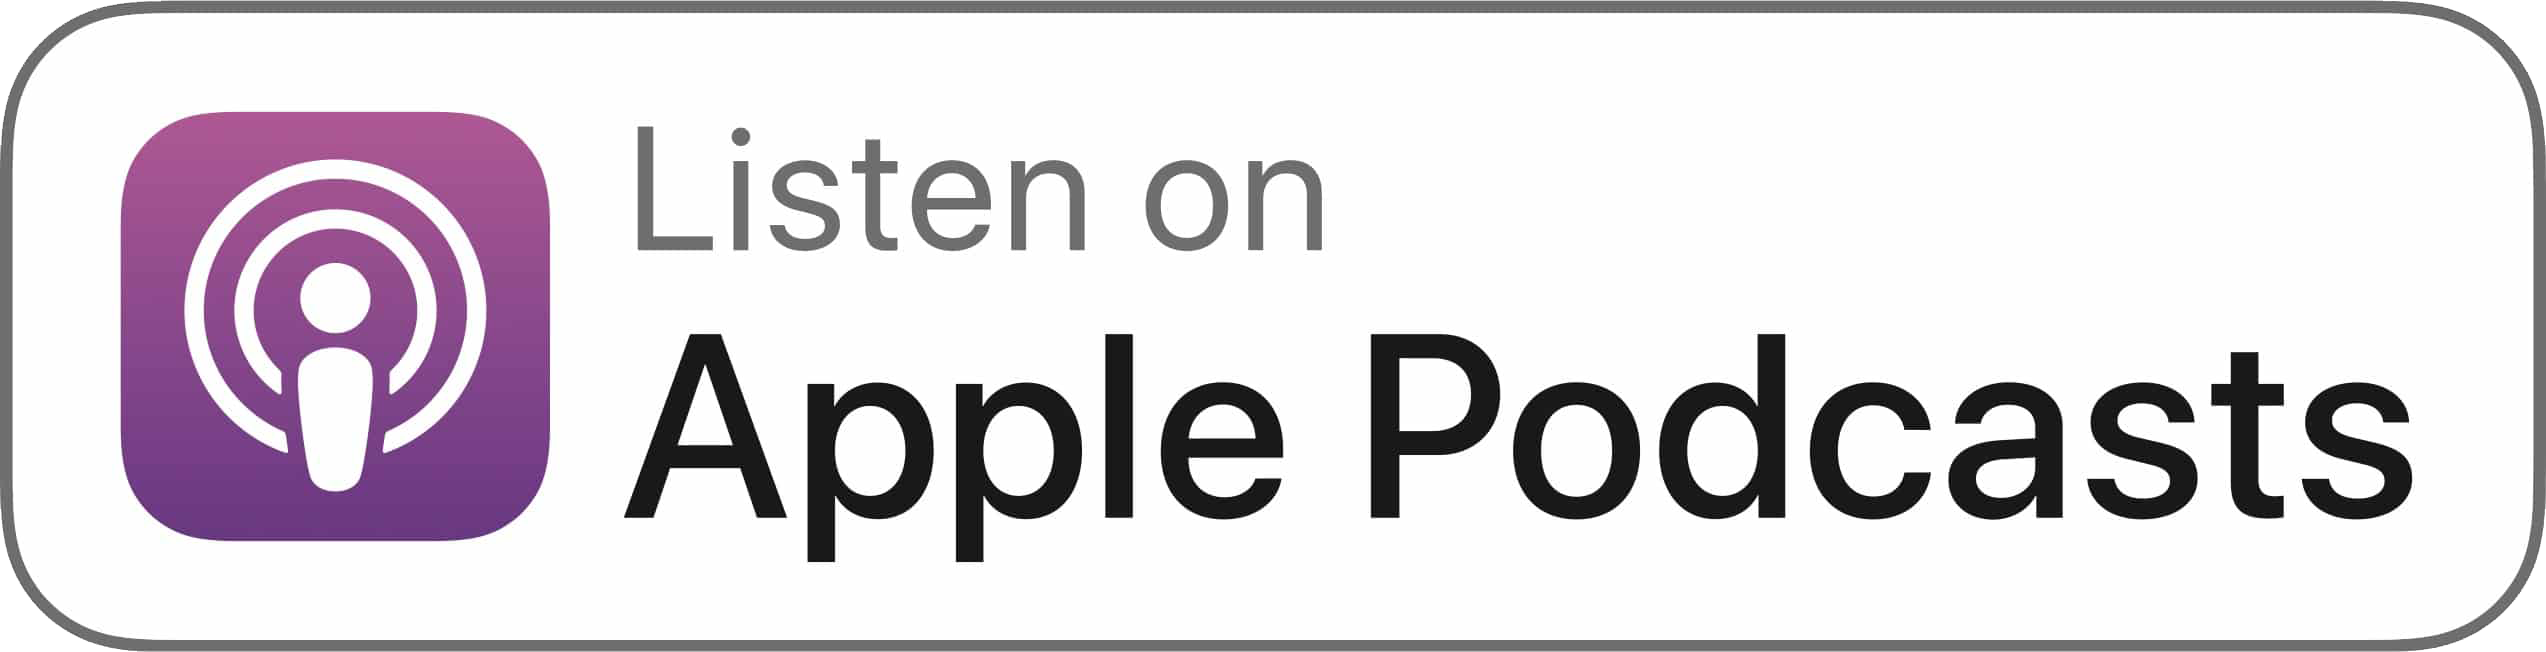 Listen-on-Apple-Podcasts-badge_c7c747ee1c3d7b81afb865a8f8f0719b